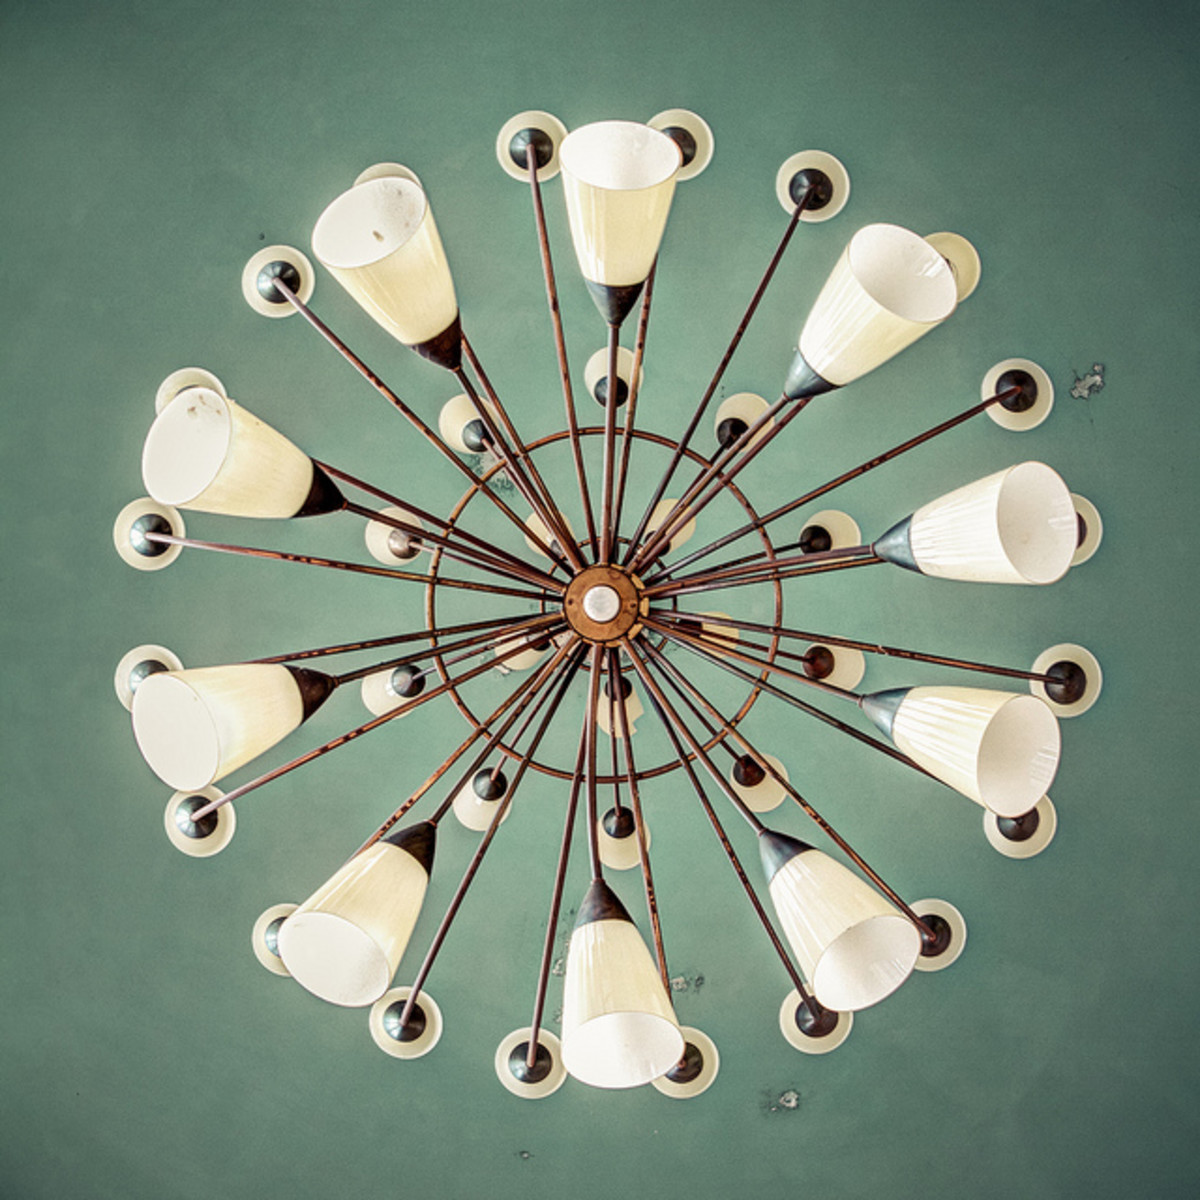 This is a contemporary take on traditional chandeliers.